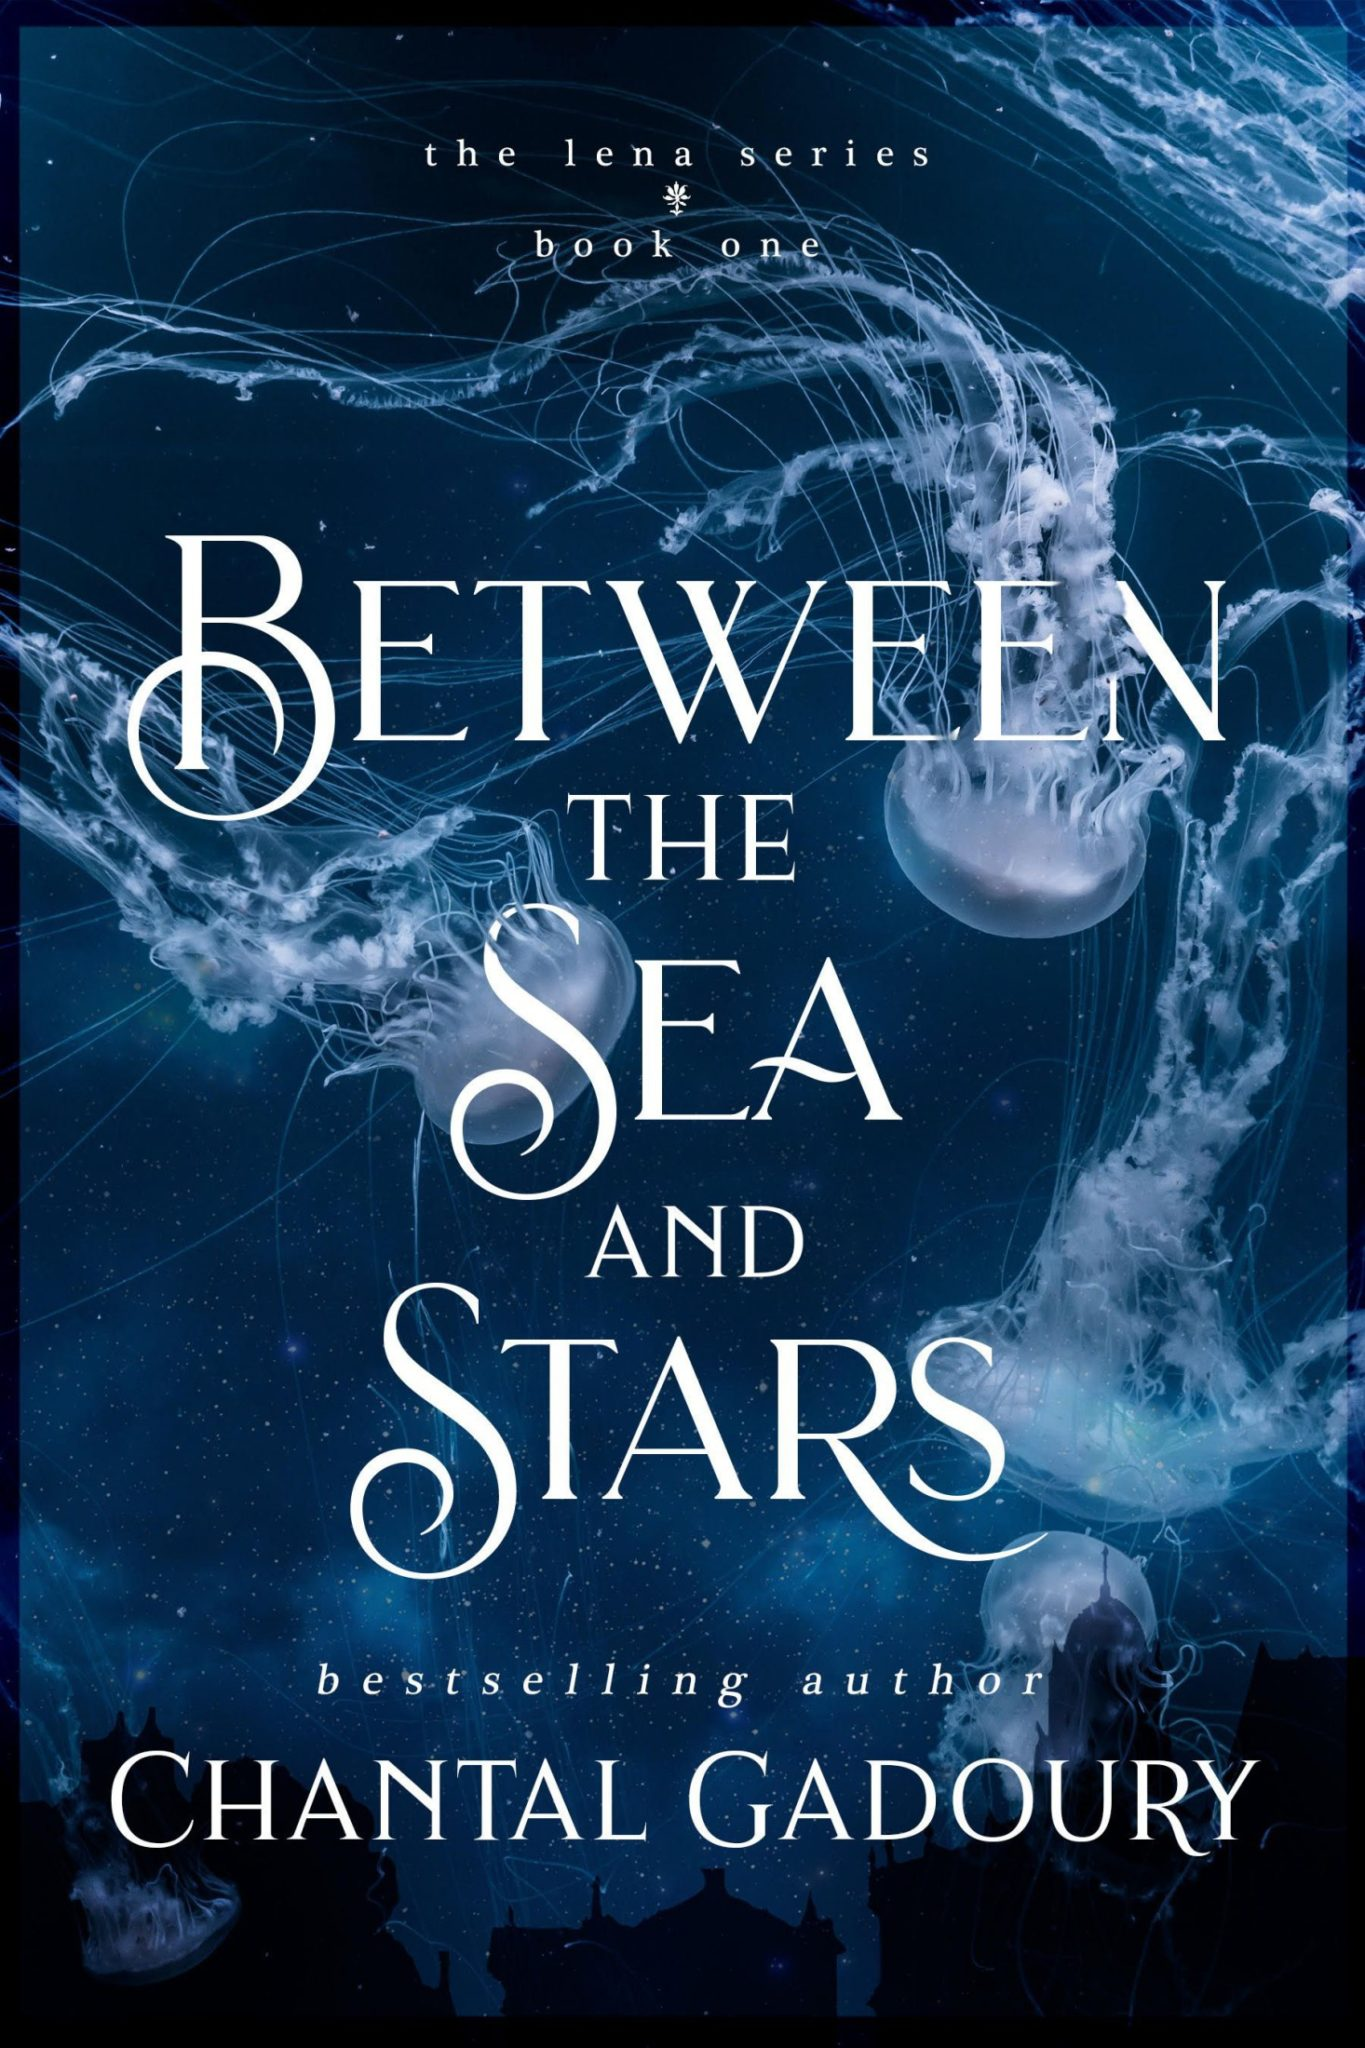 Between the Sea and Stars by Chantal Gadoury